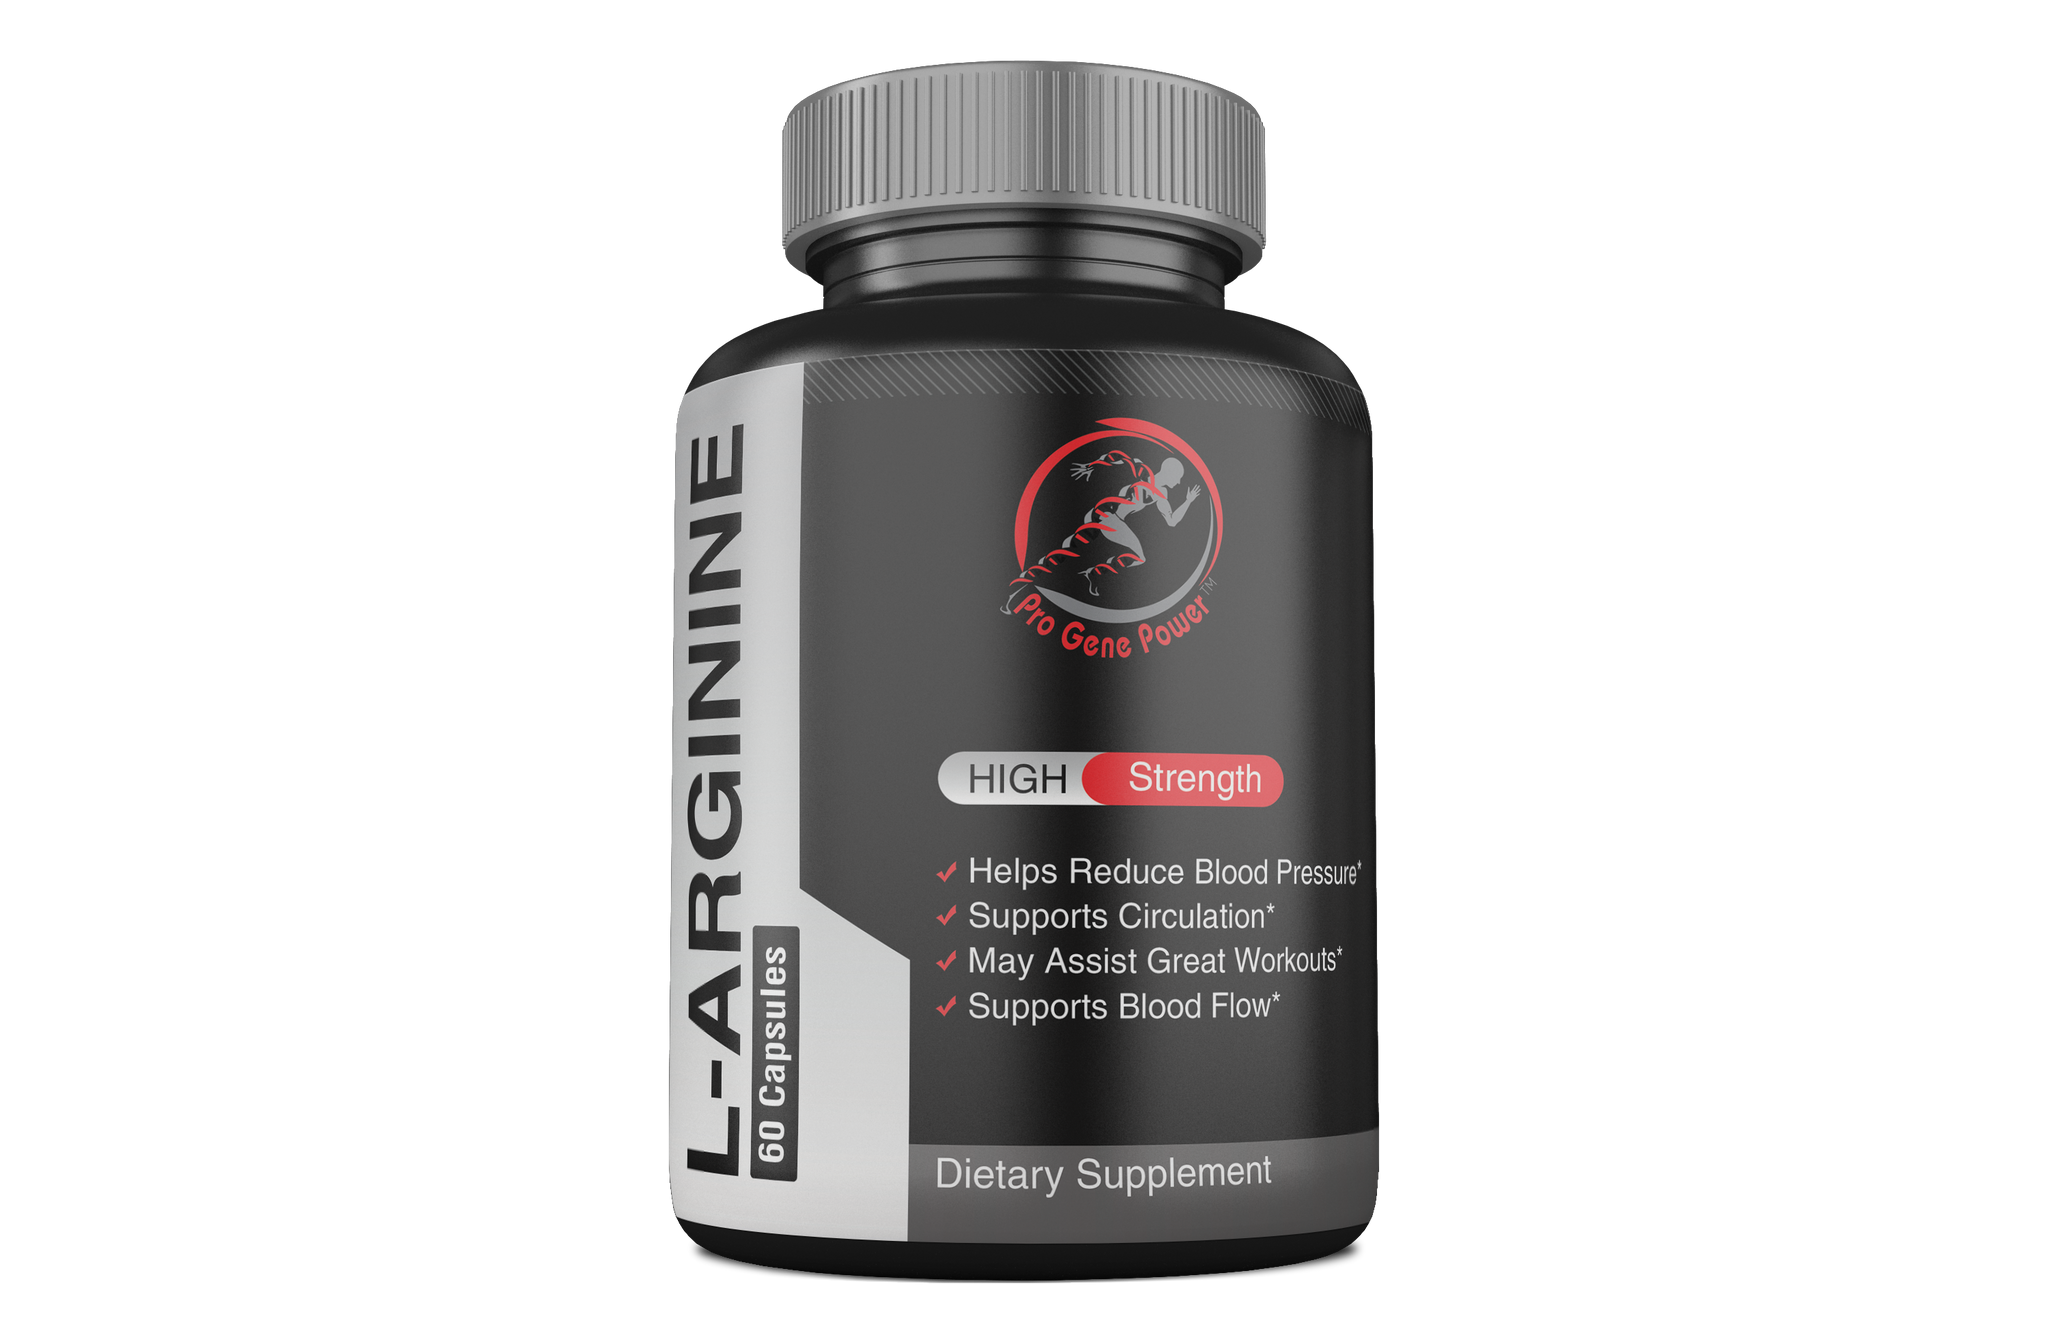 PRO GENE POWER ADVANCED ARGININE